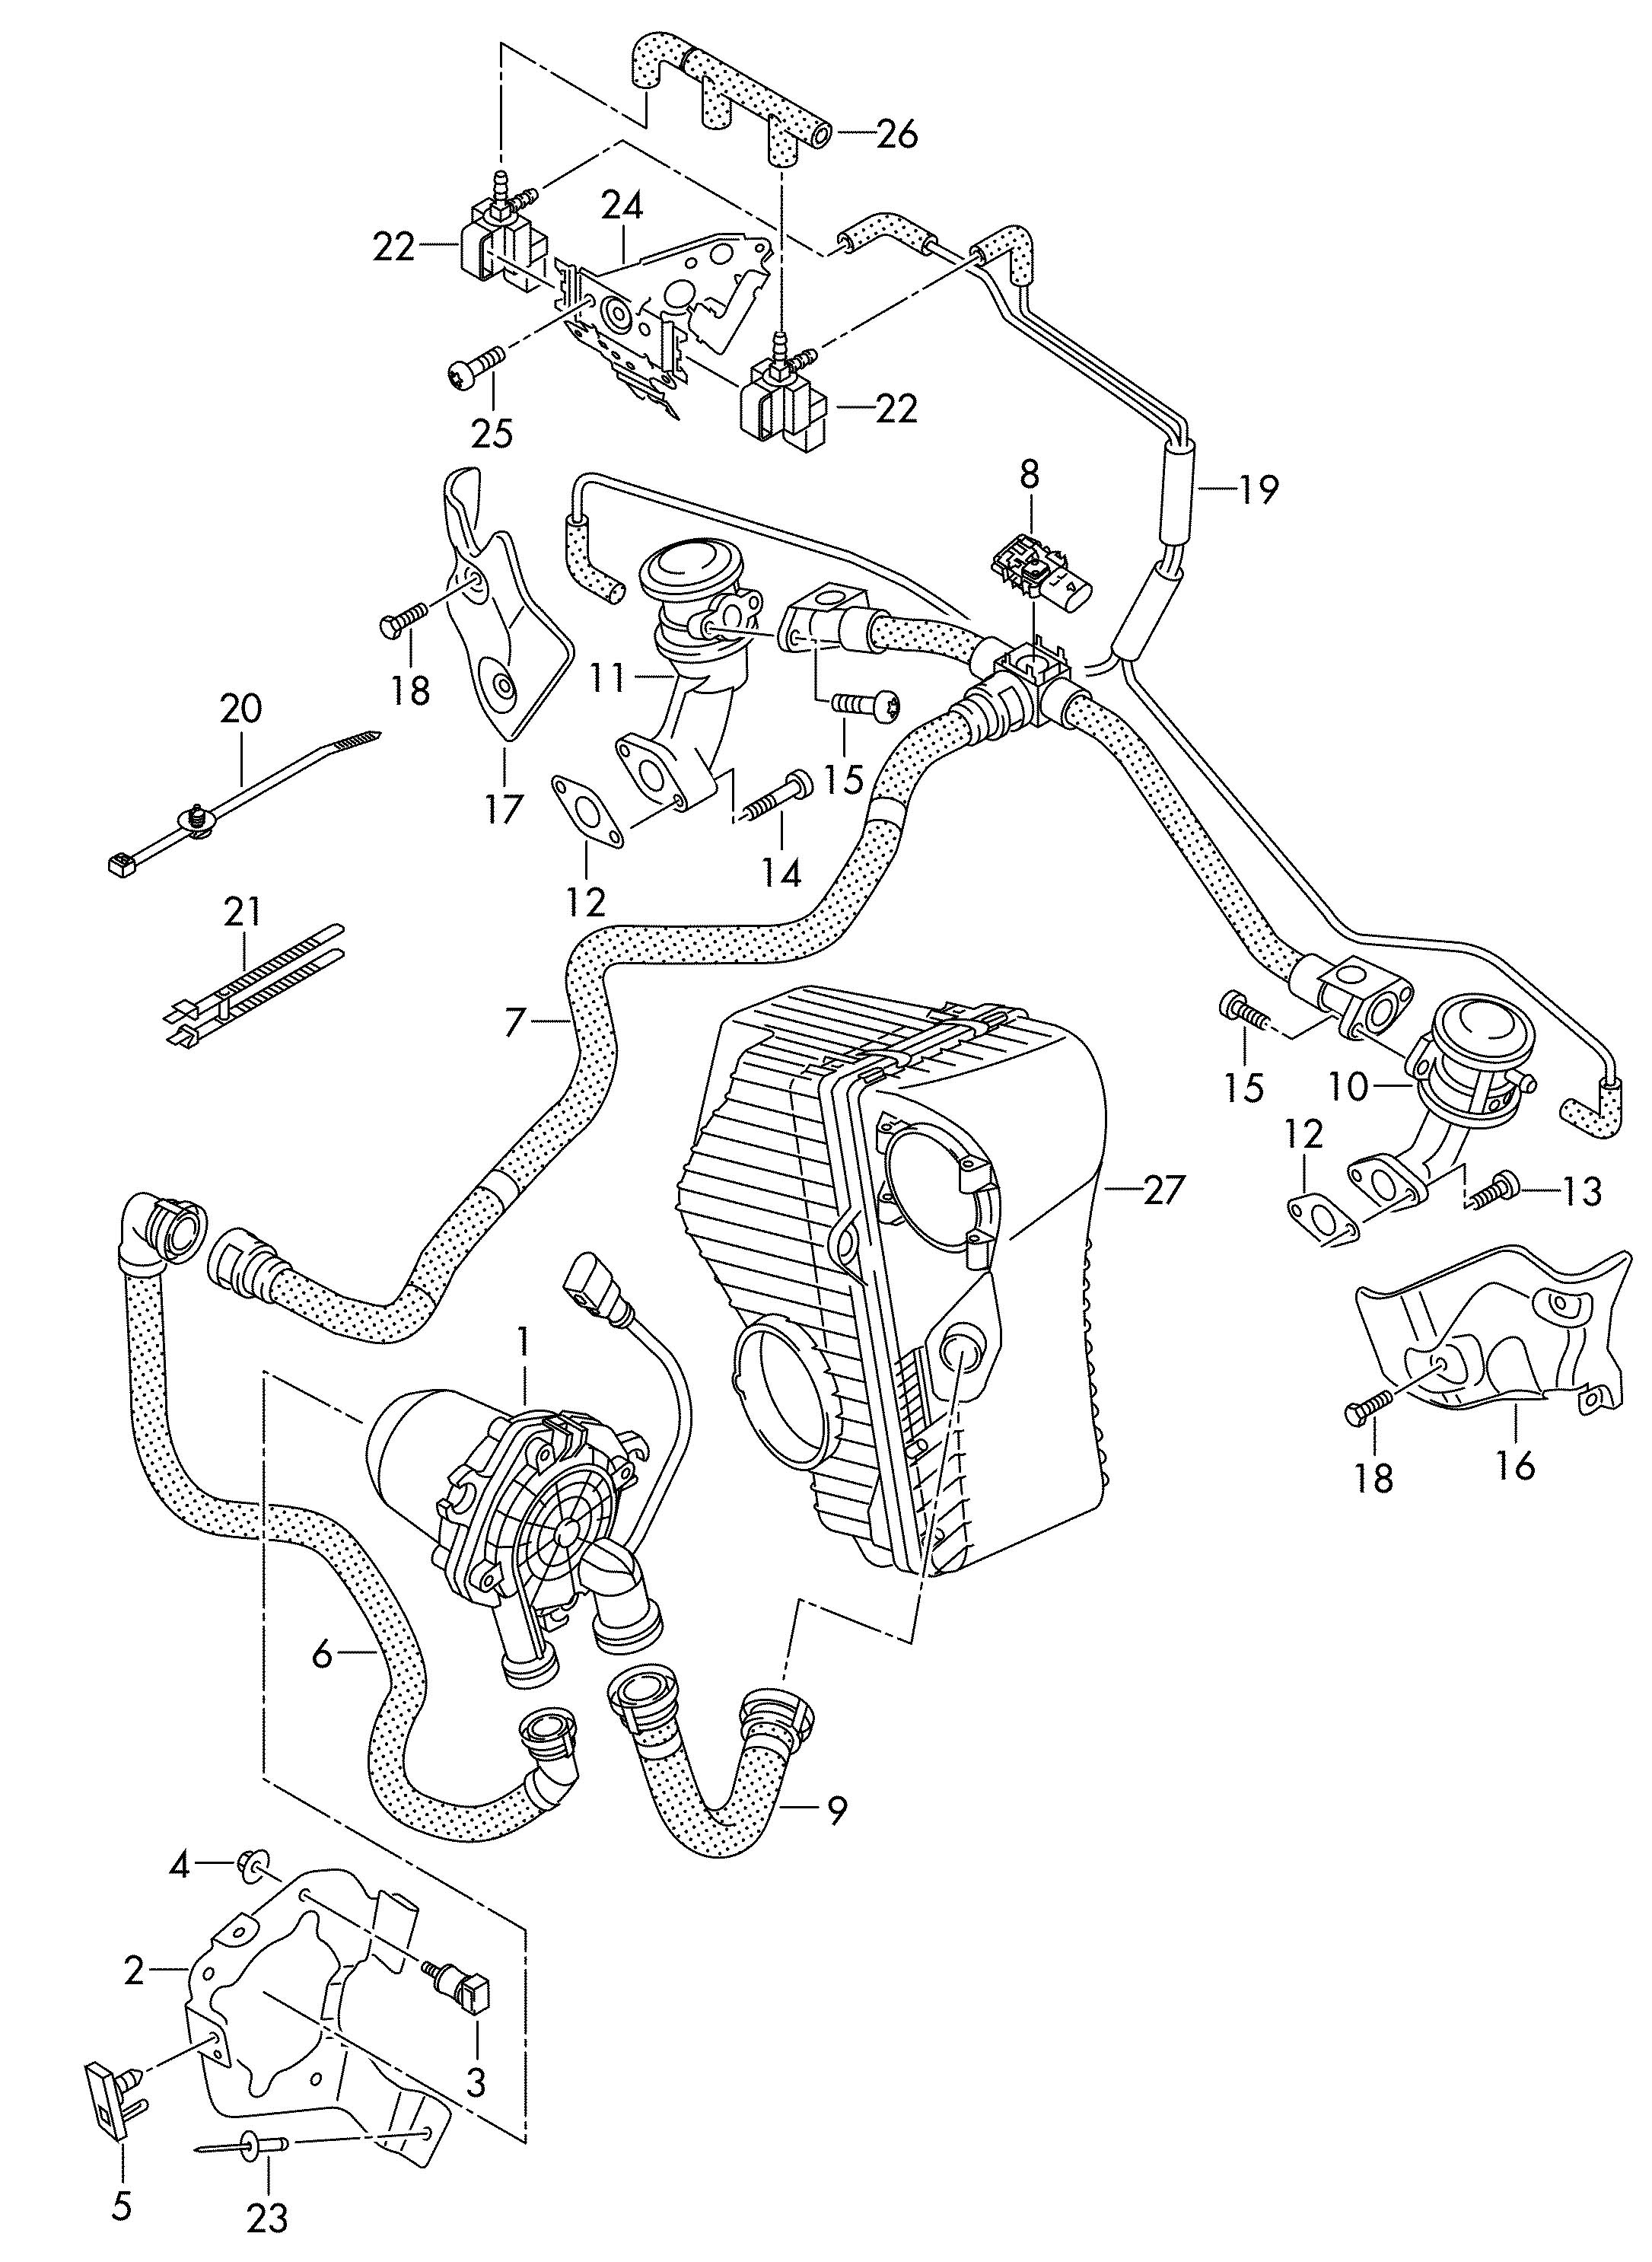 Volkswagen Touareg Vacuum Hoses With Connecting Parts